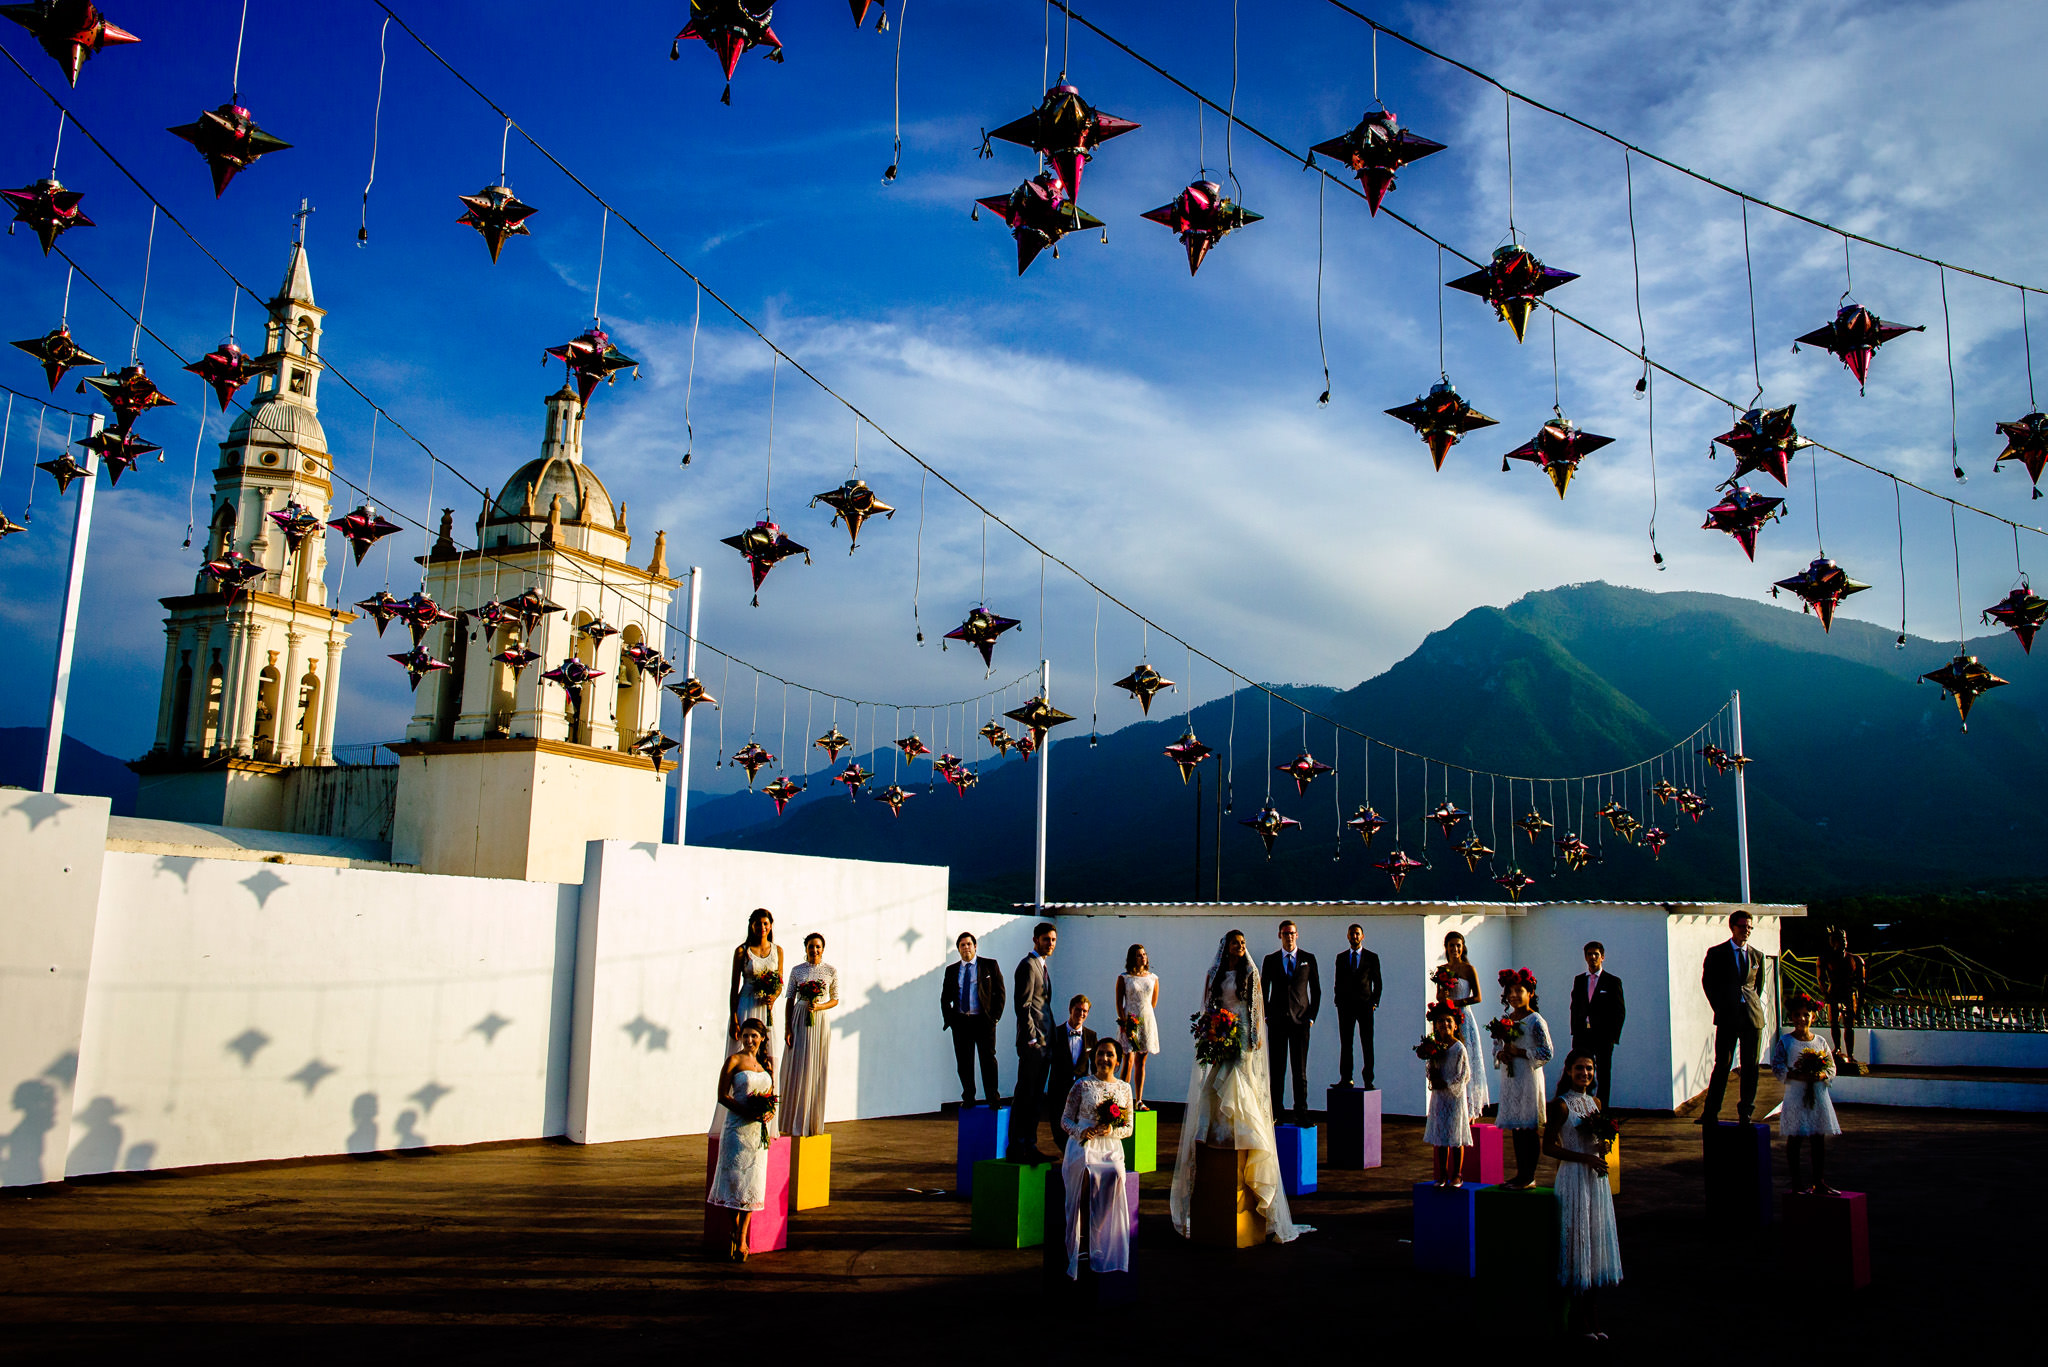 Alex and Patrick's wedding in Santiago, Mexico on Saturday, July 2, 2016.